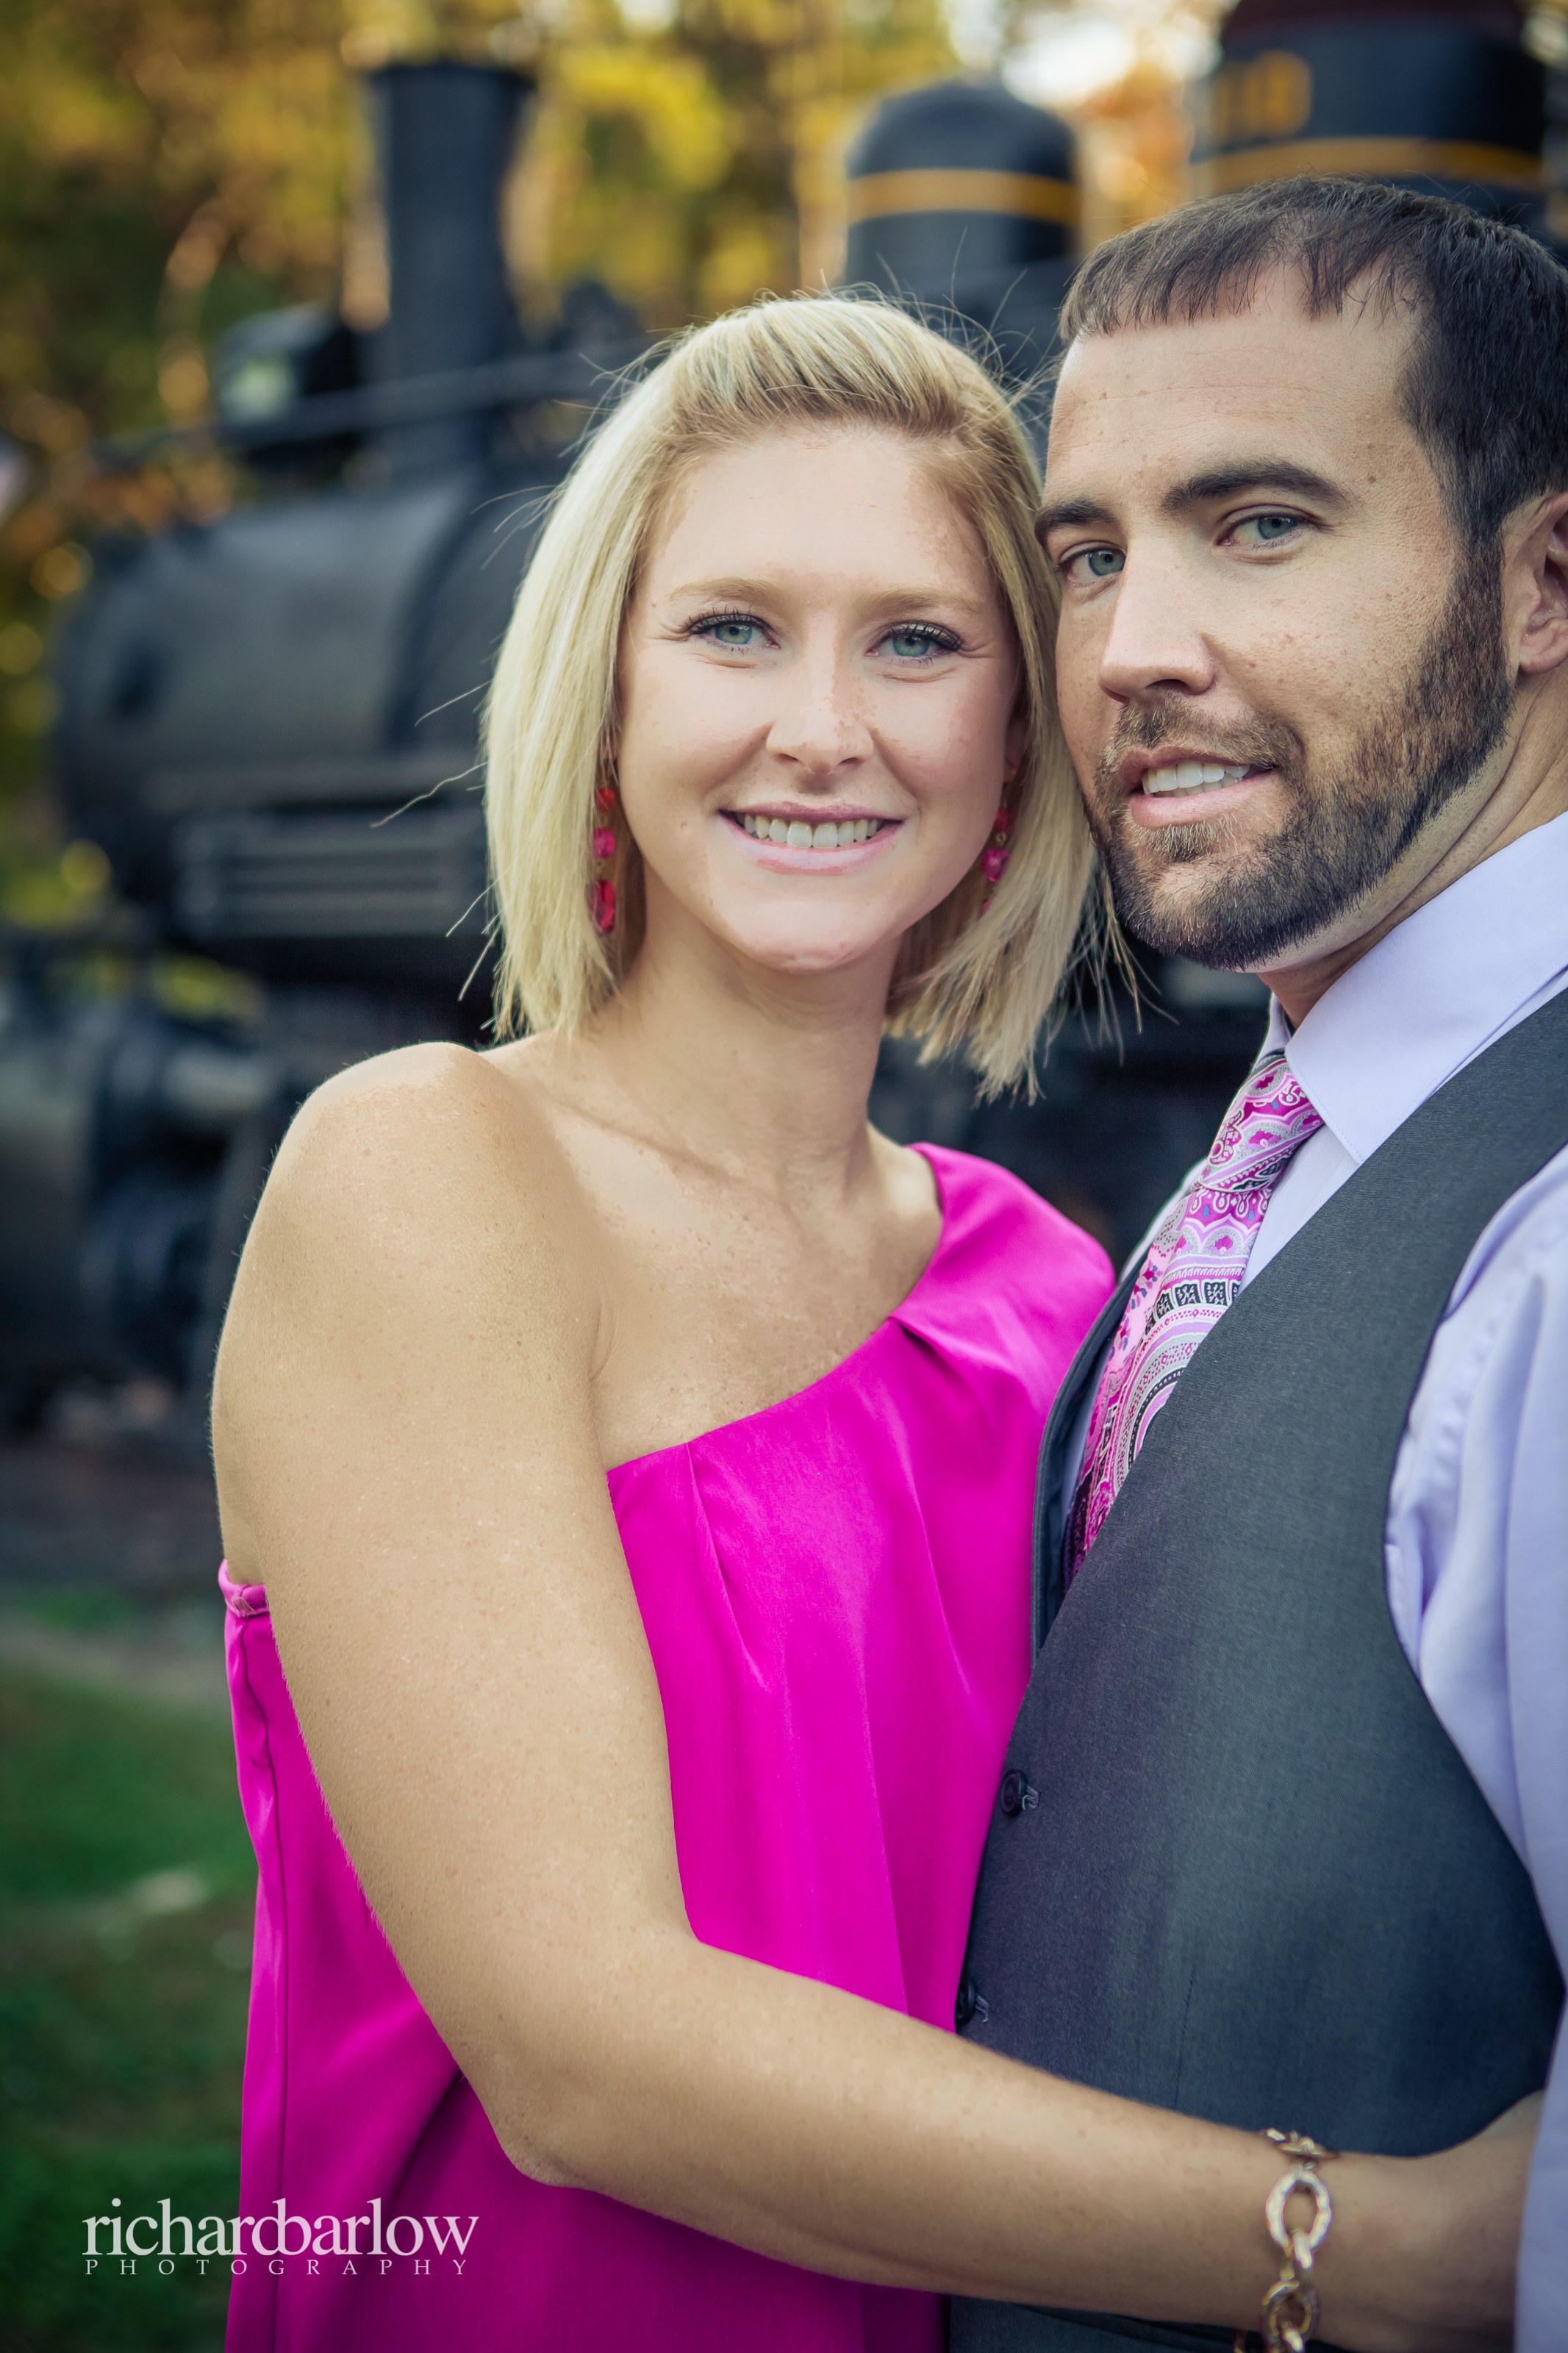 richard barlow photography - Mike and Renee Engagement Session NC-7.jpg